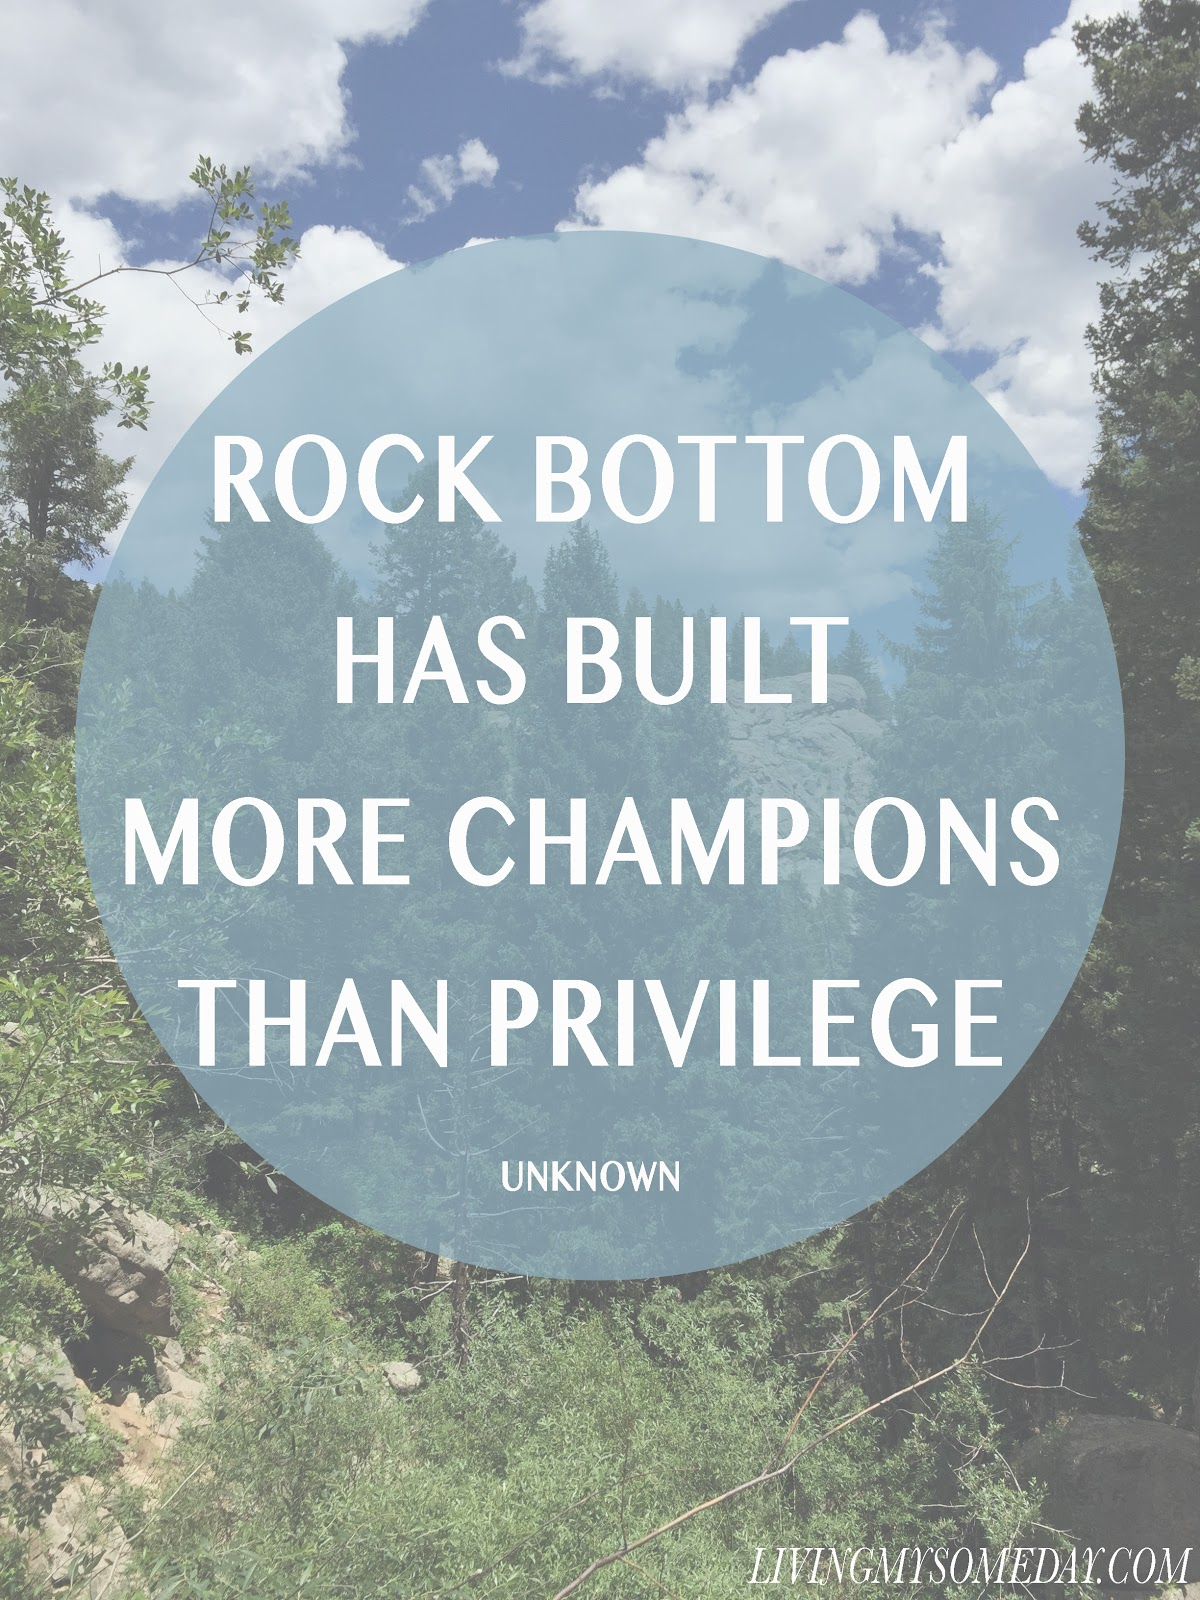 Rock Bottom Has Built More Champions than Privilege